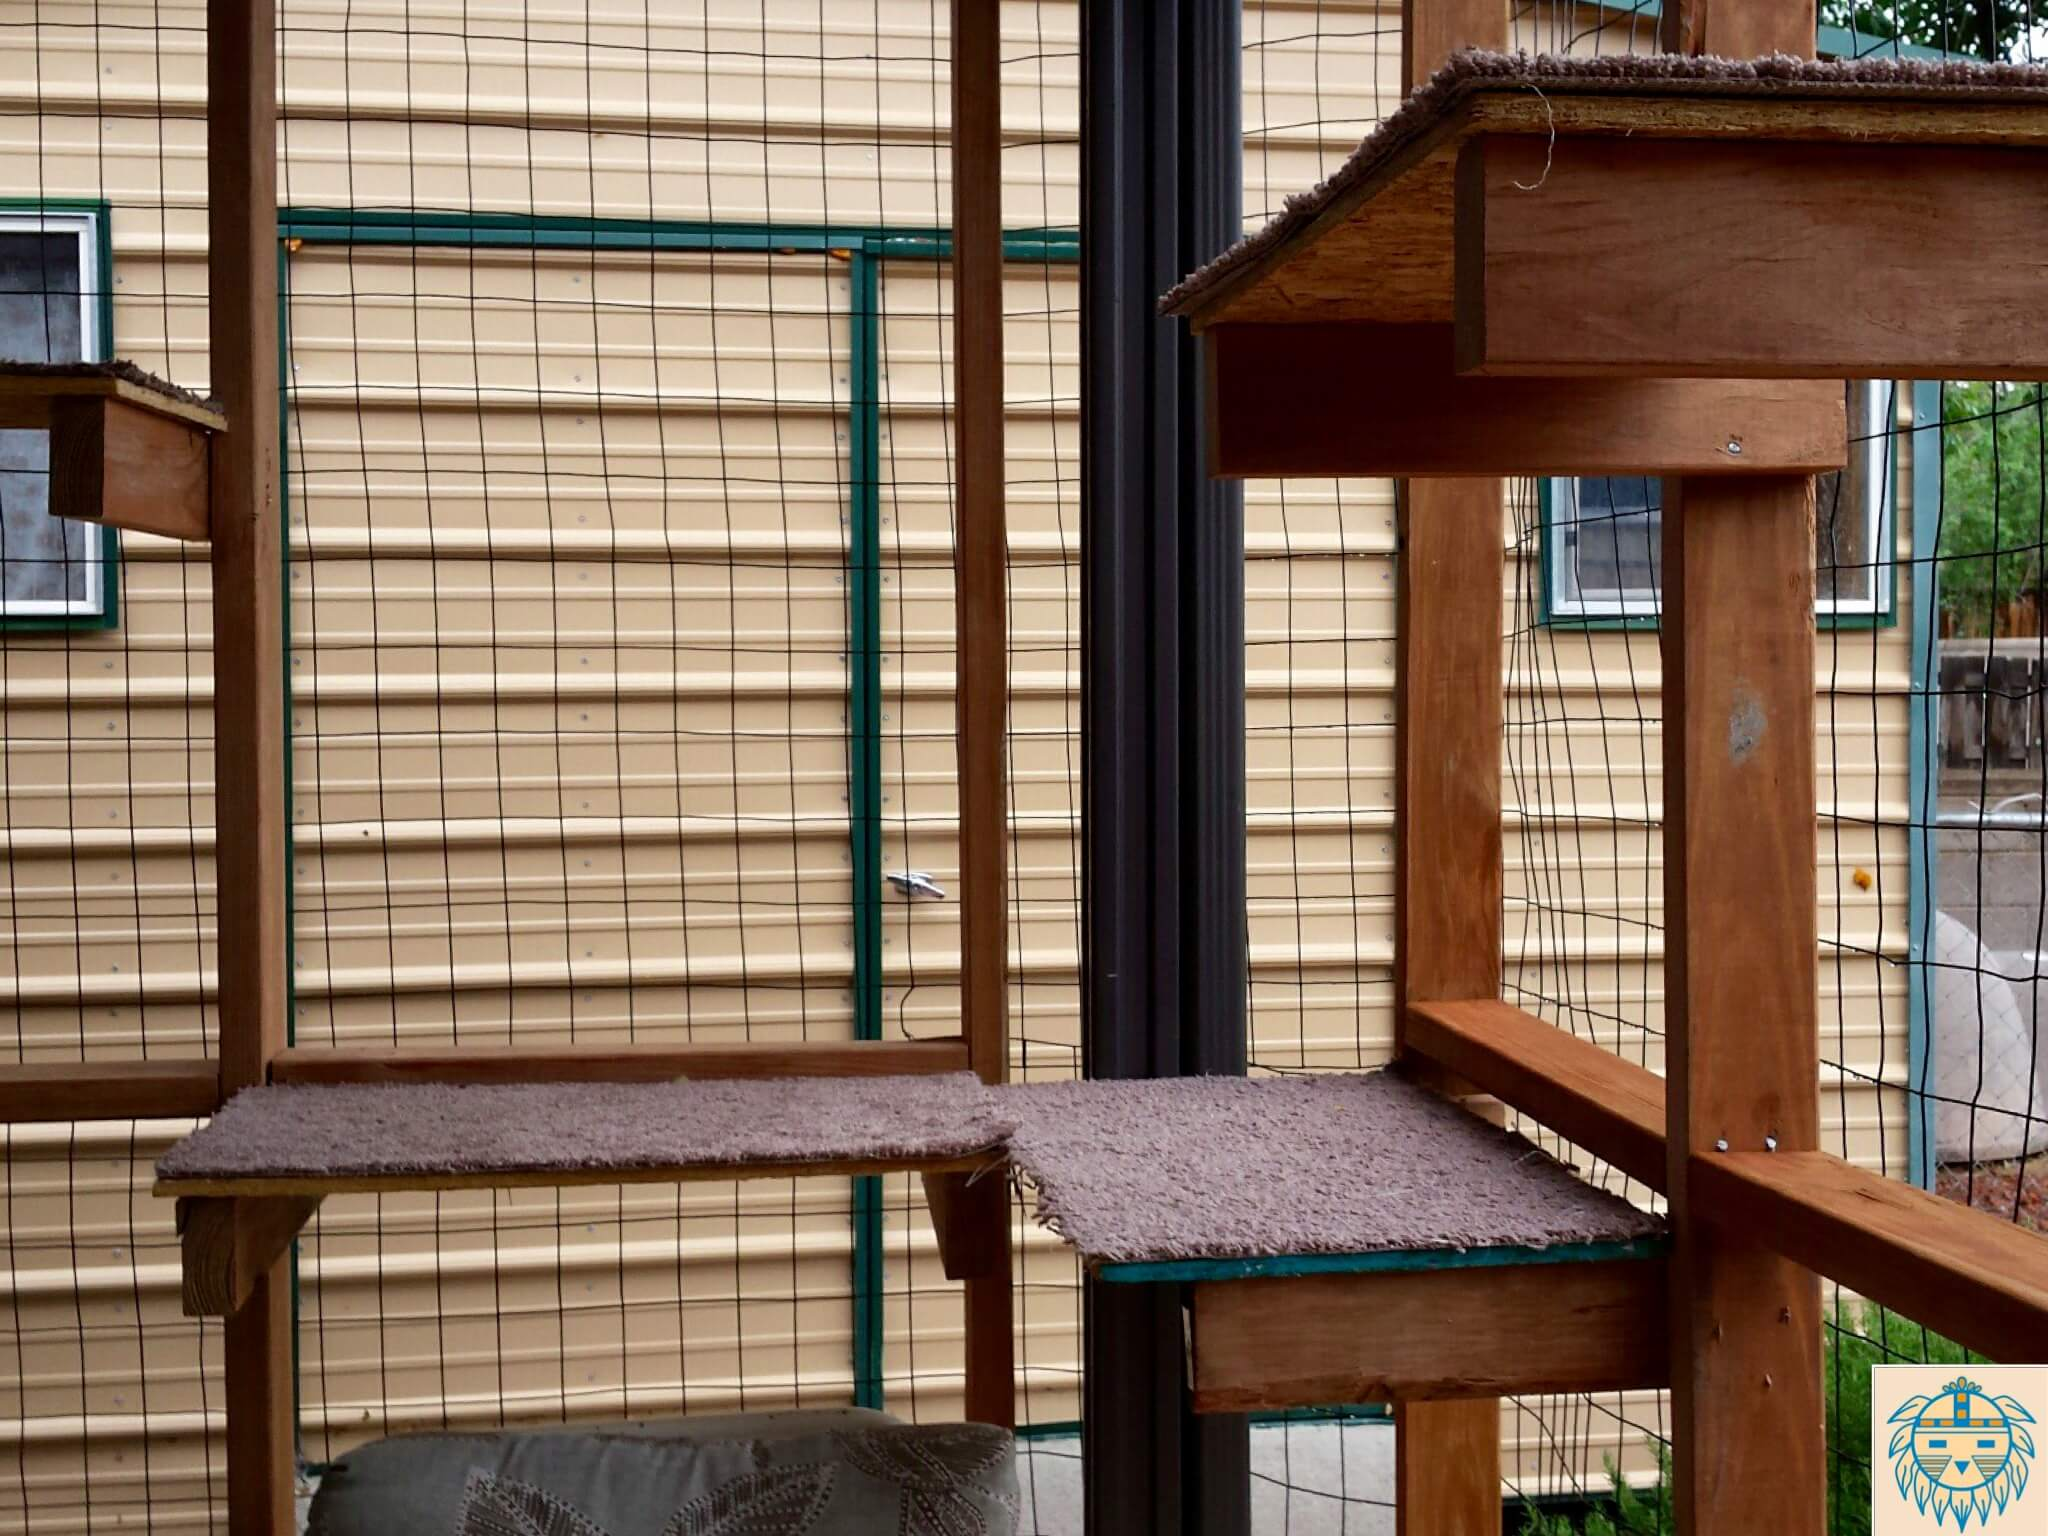 "Built in perches enable the cats to observe the outdoor in a comfortable place ""above"" the bustle of the world. The addition of a bird feeding station safely outside the enclosure can also provide much enjoyed visual stimulation for your cats. This is one that one of our client built for their cats."